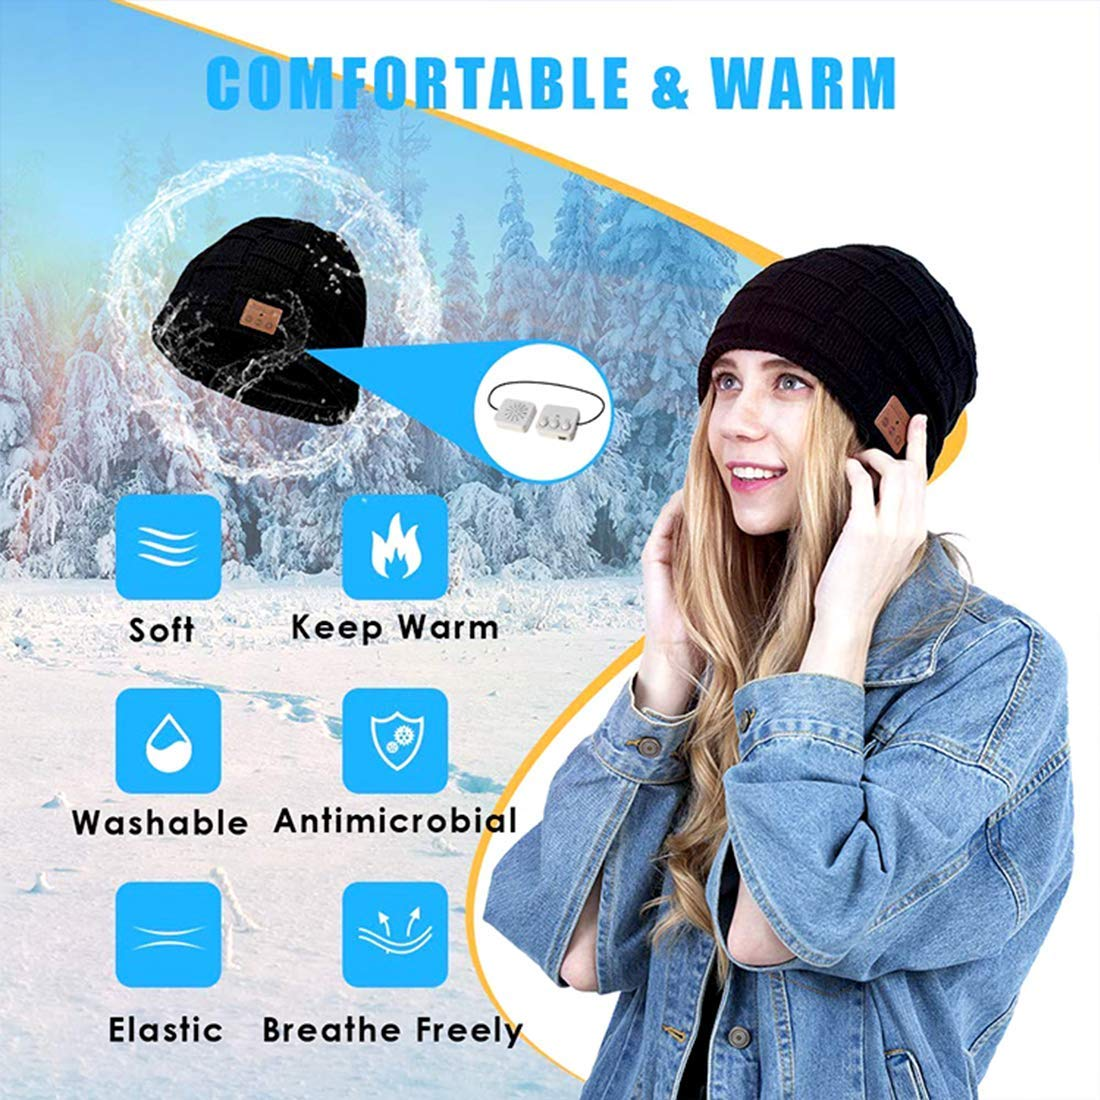 1pcs Black EDDORUNNING Bluetooth hat 5.0 Wireless Beanie Headset Wireless Rechargeable Headphones Running Cap with Stereo Speakers /& Mic Unique Tech Warm Soft Cap for Men and Women